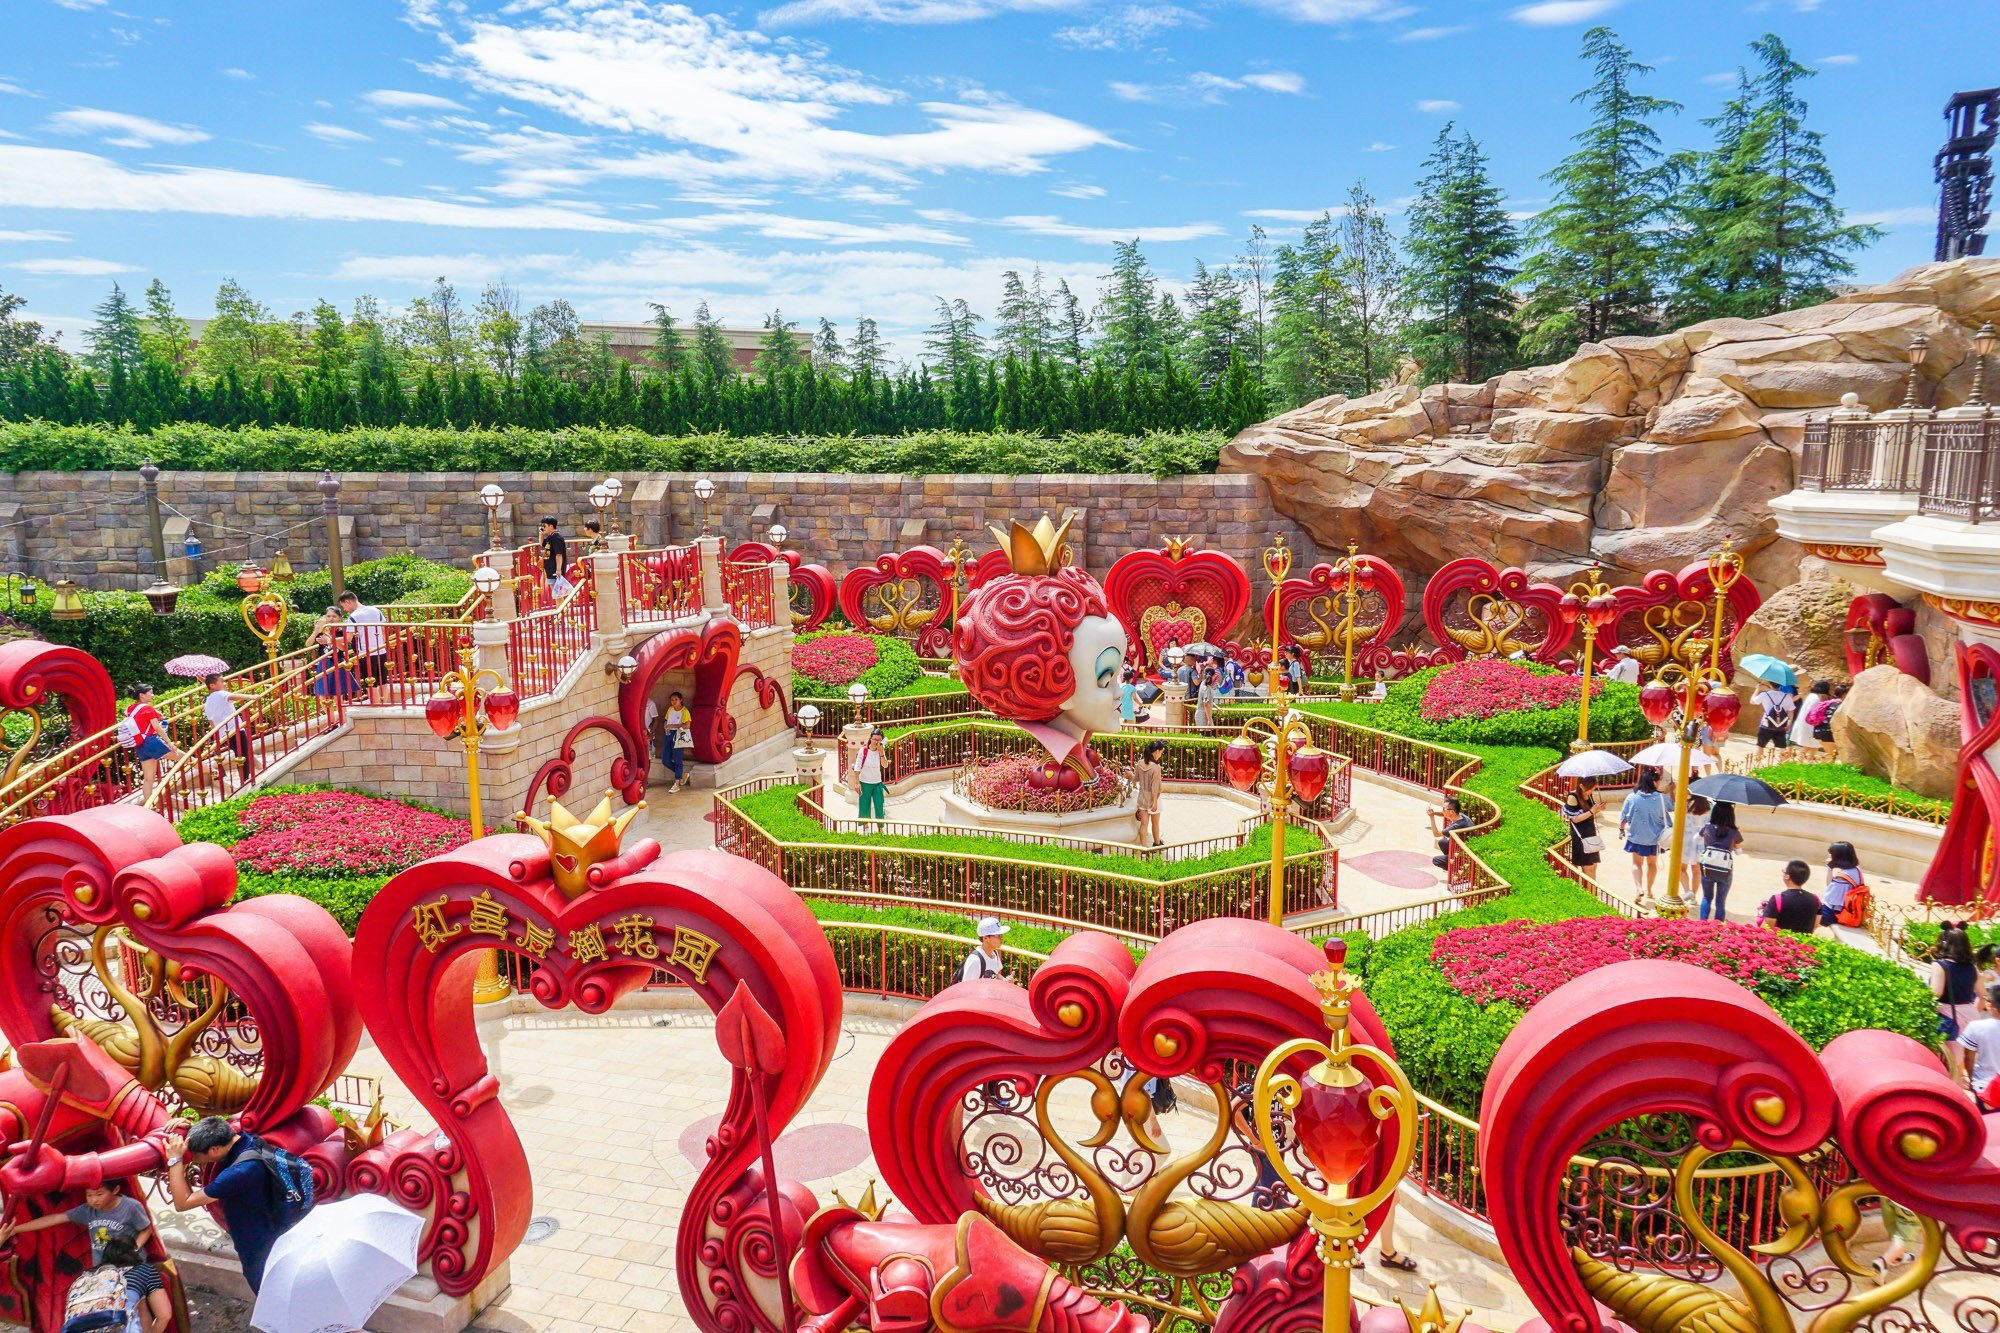 Alice in Wonderland Maze in Fantasyland at Shanghai Disneyland